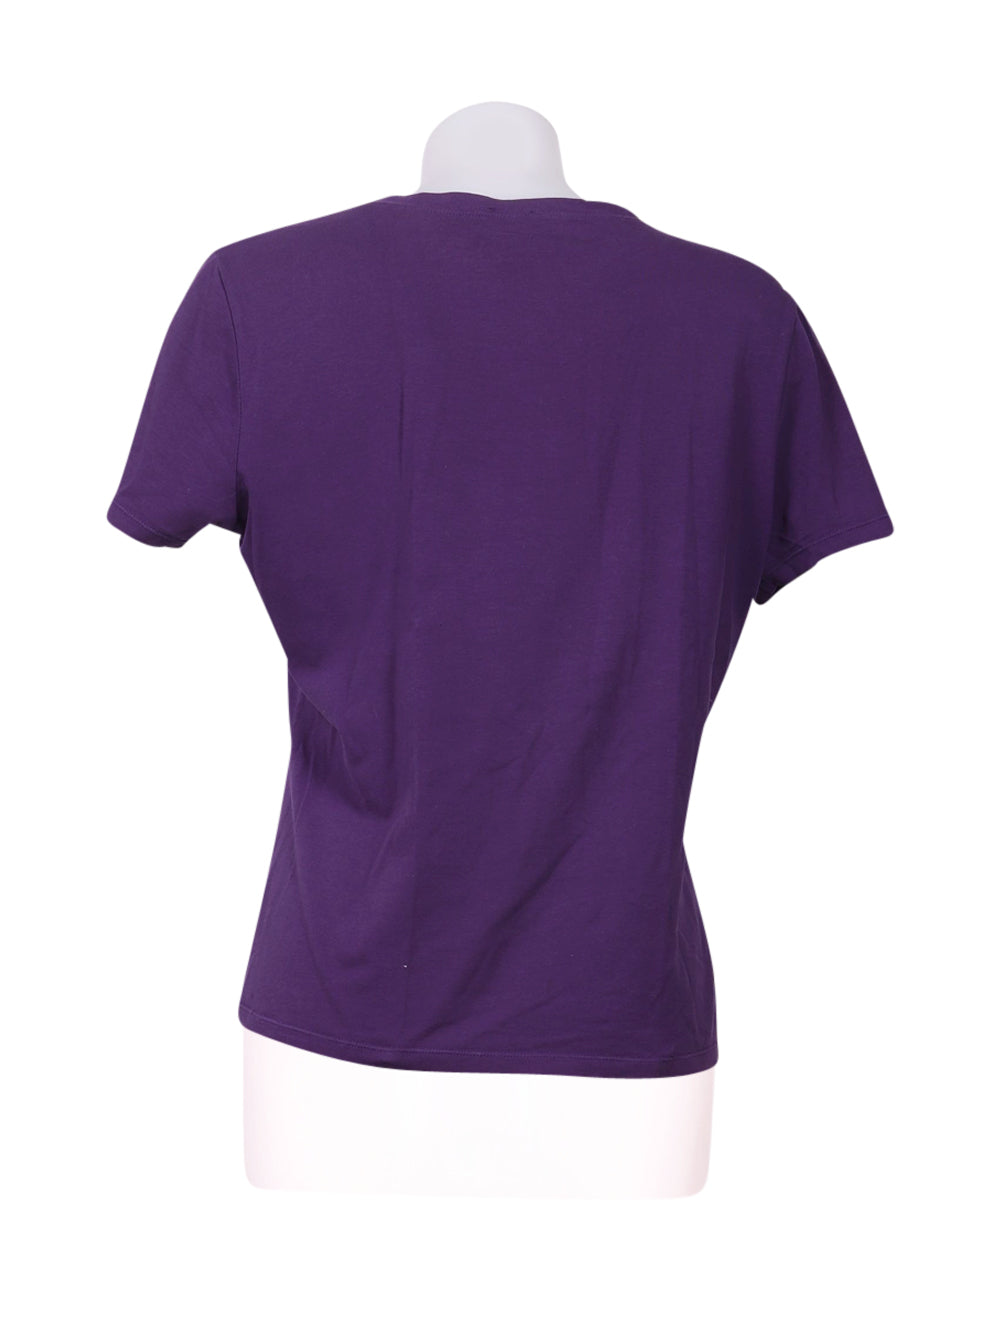 Back photo of Preloved Oltre Violet Woman's t-shirt - size 8/S